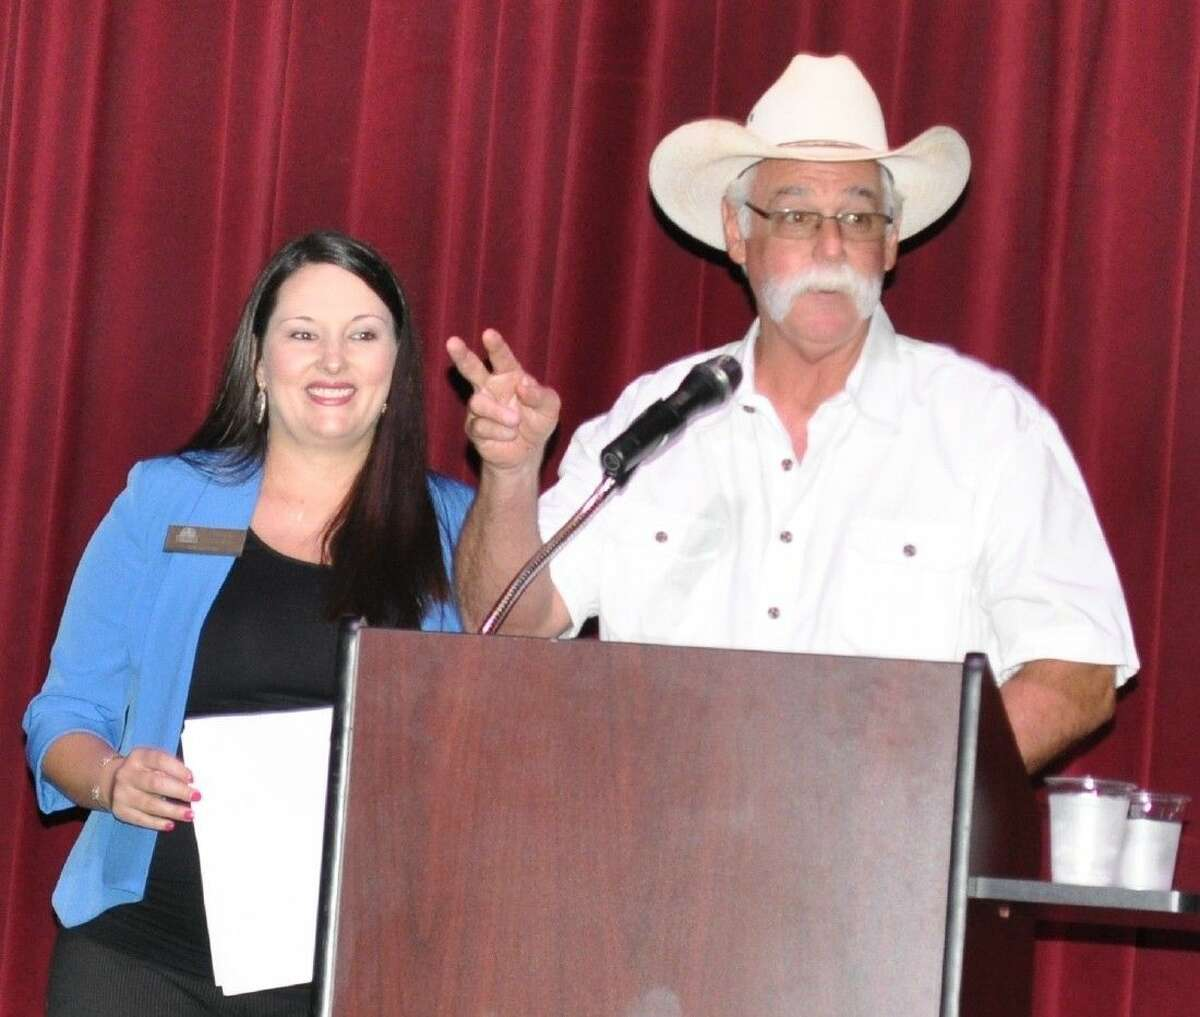 Mark Beaver, auctioneer is assisted by Christina Womack for a fast paced live auction at Art Park Theater.